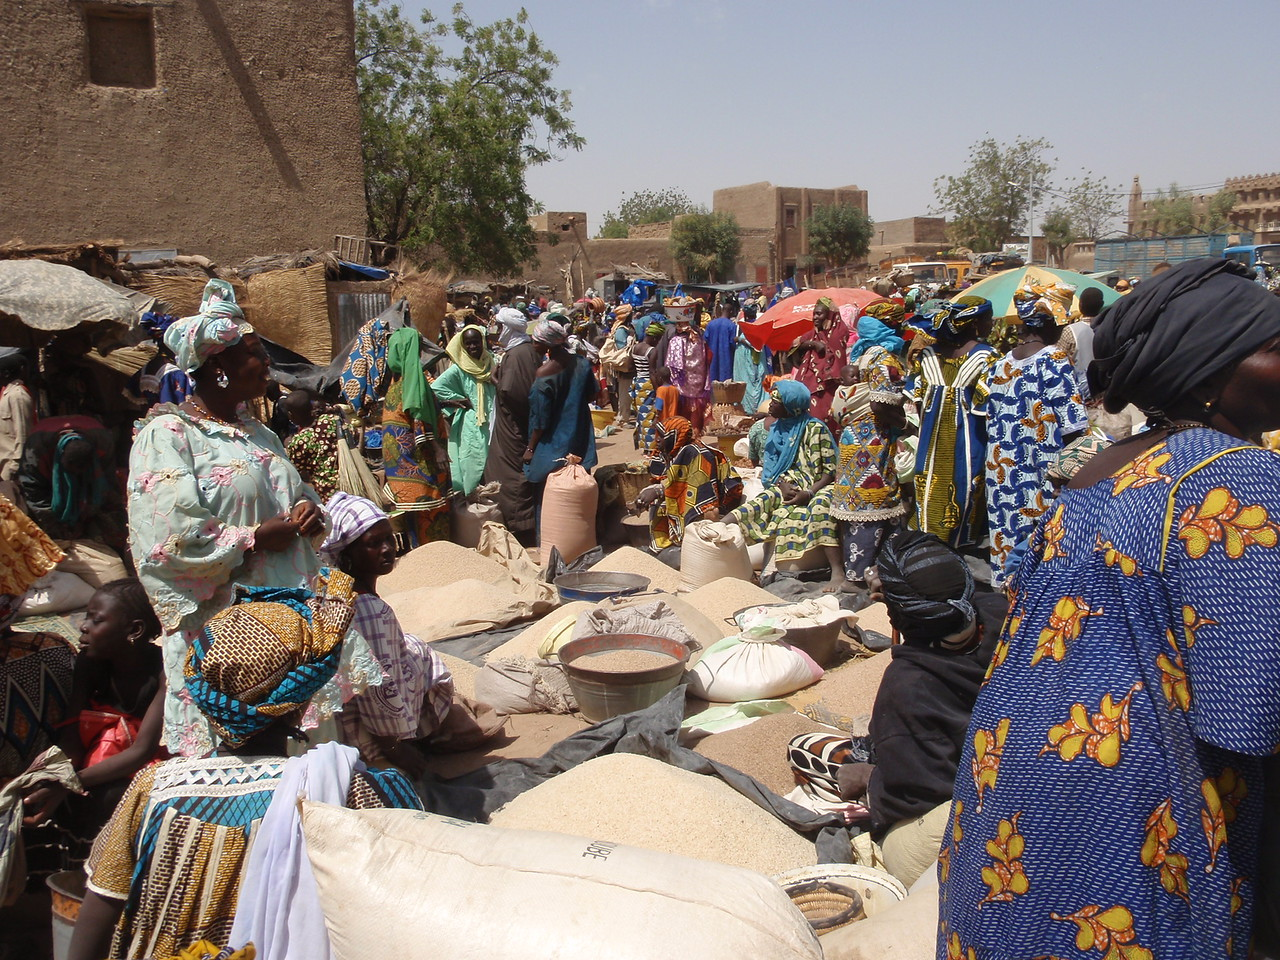 161_Djenne Old Town  The Bustling and Colourful Monday Market